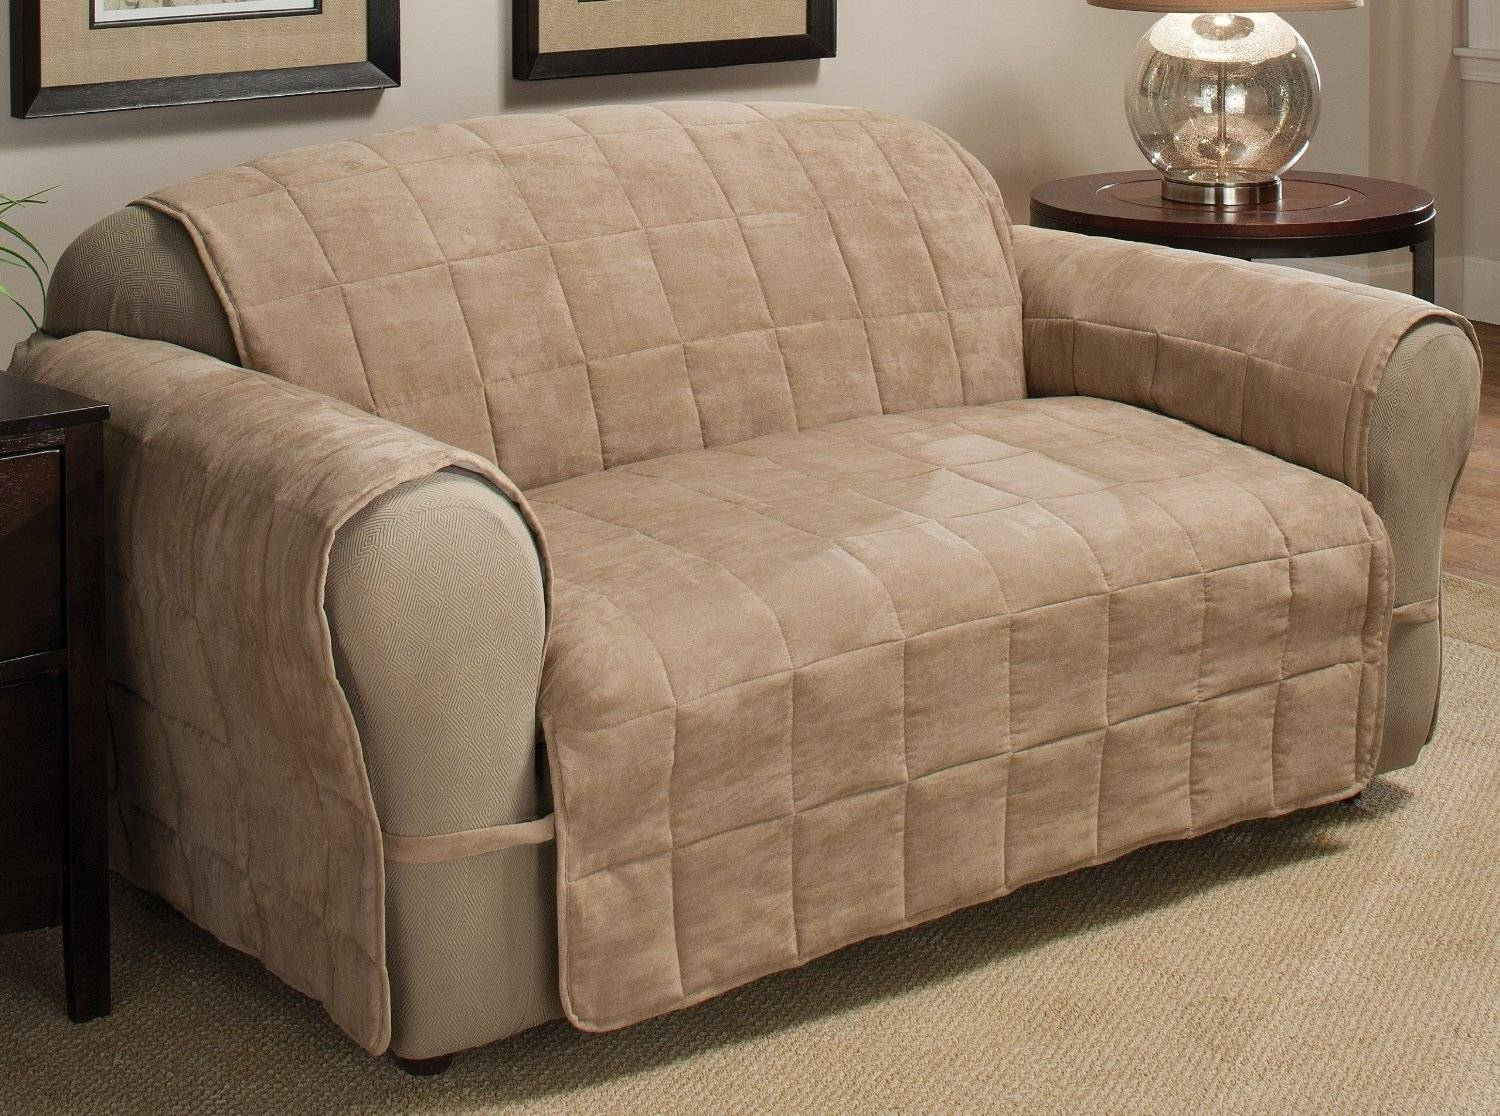 Pet Covers For Sofas Canada | Centerfieldbar intended for Pet Proof Sofa Covers (Image 5 of 15)